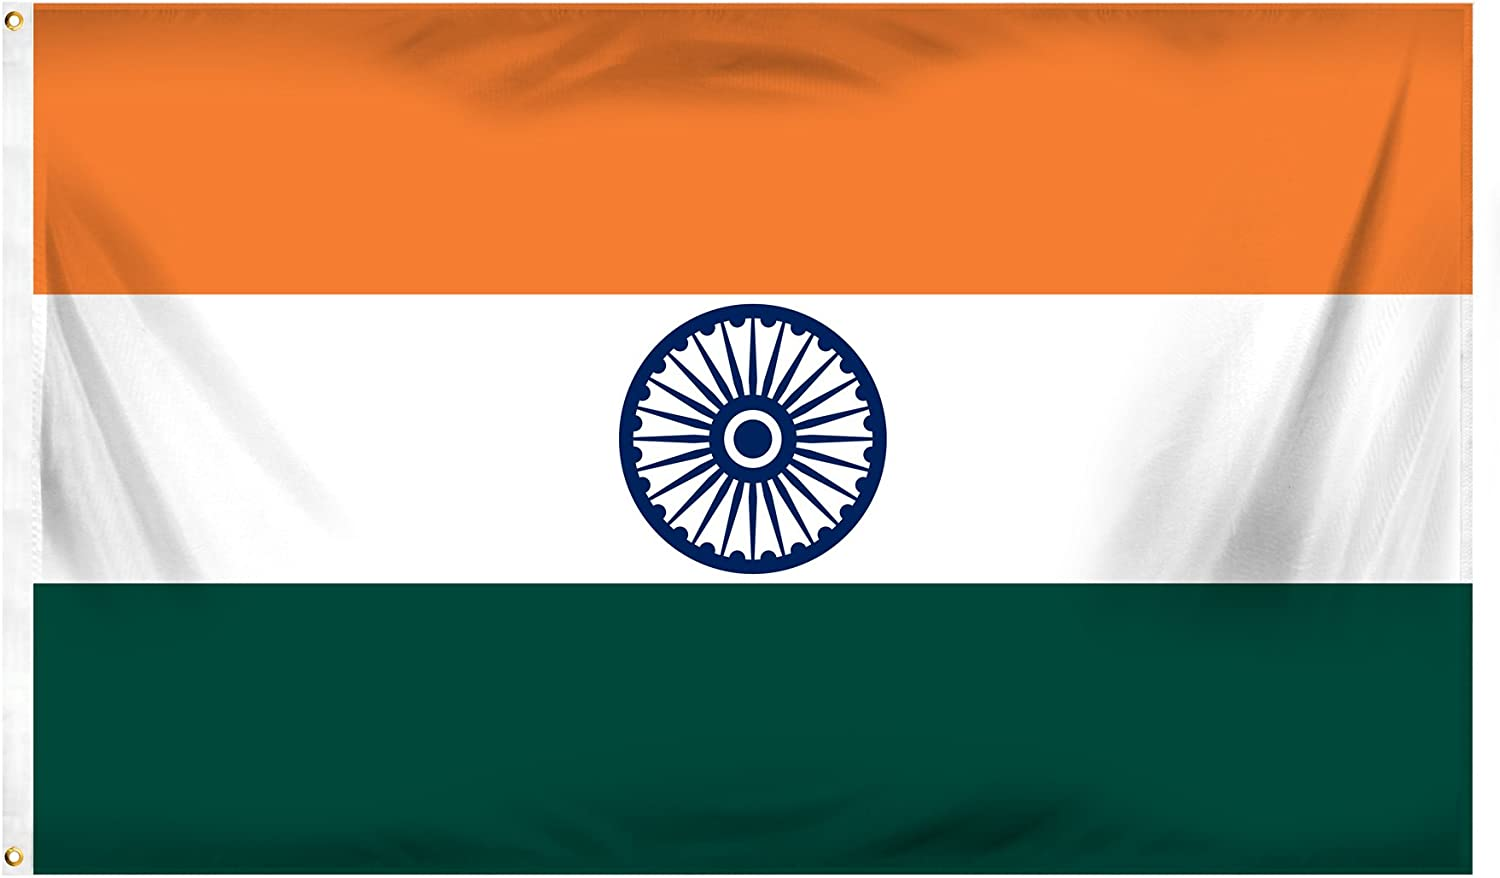 Amazon Com Online Stores India Printed Polyester Flag 3 By 5 Feet Outdoor Flags Garden Outdoor